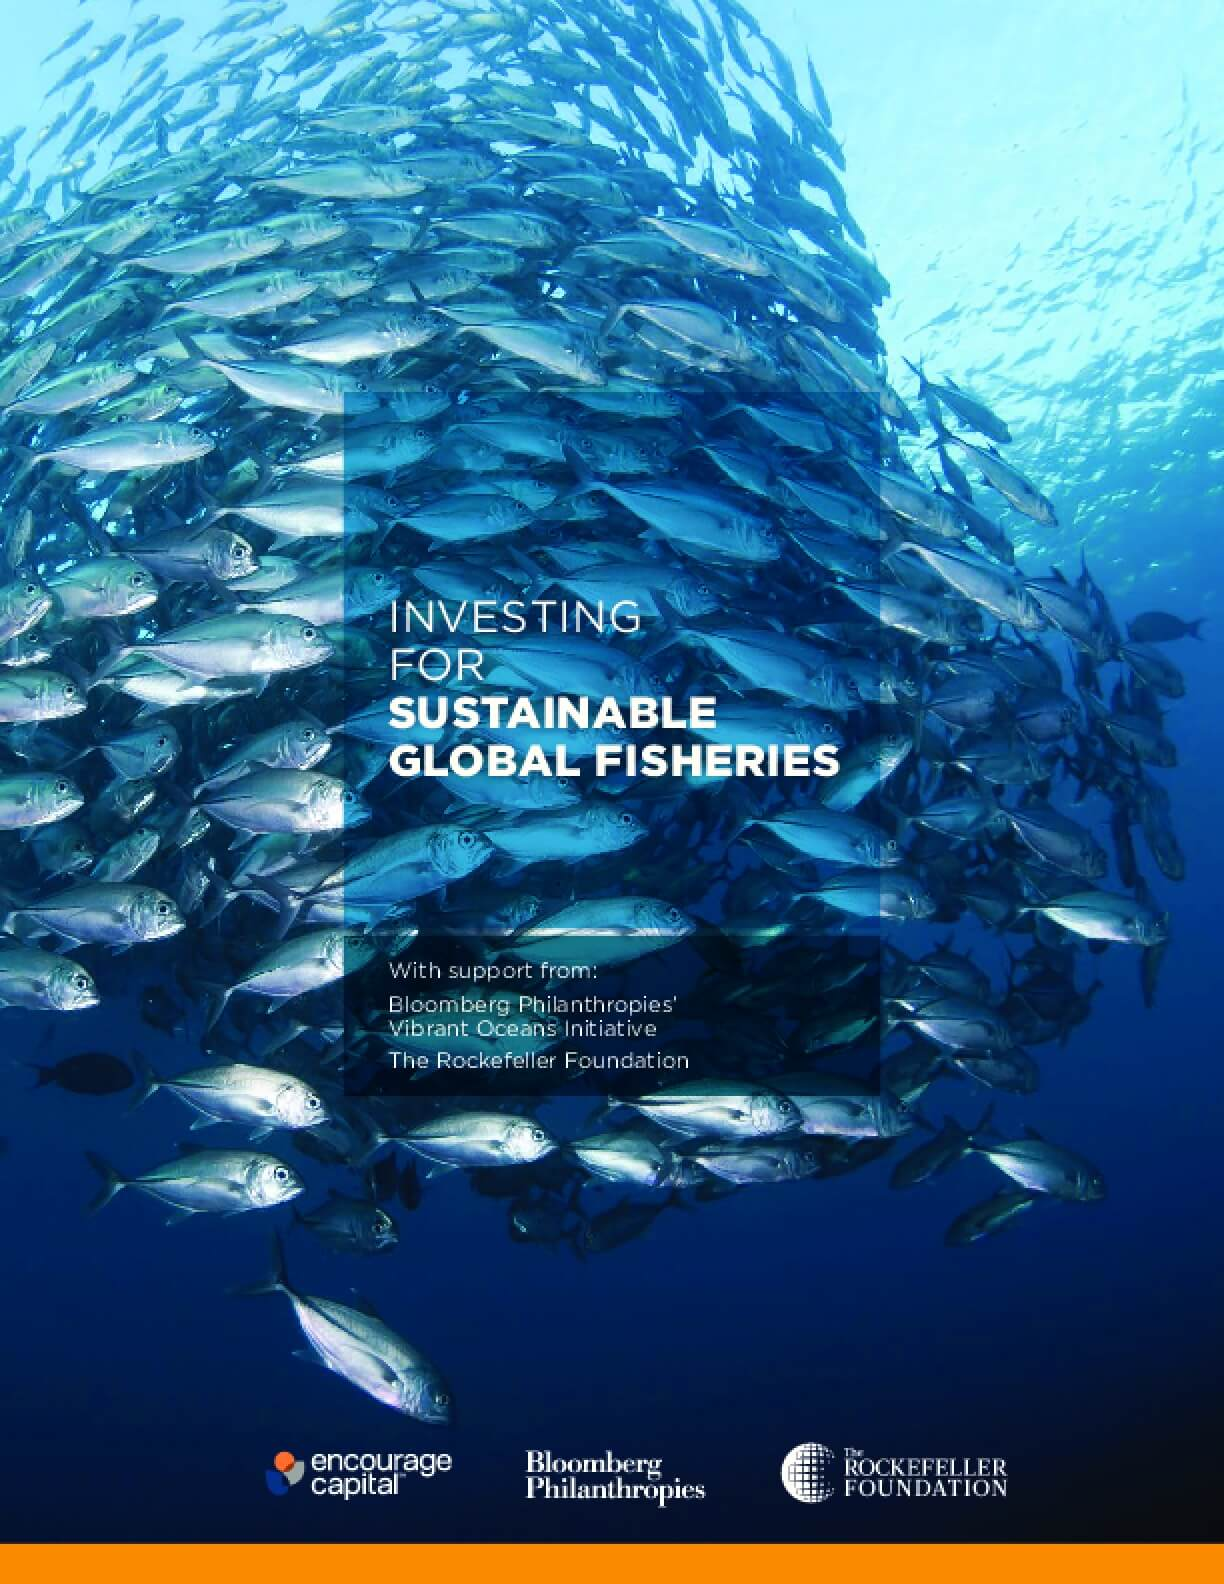 Executive Summary for Investing for Sustainable Global Fisheries